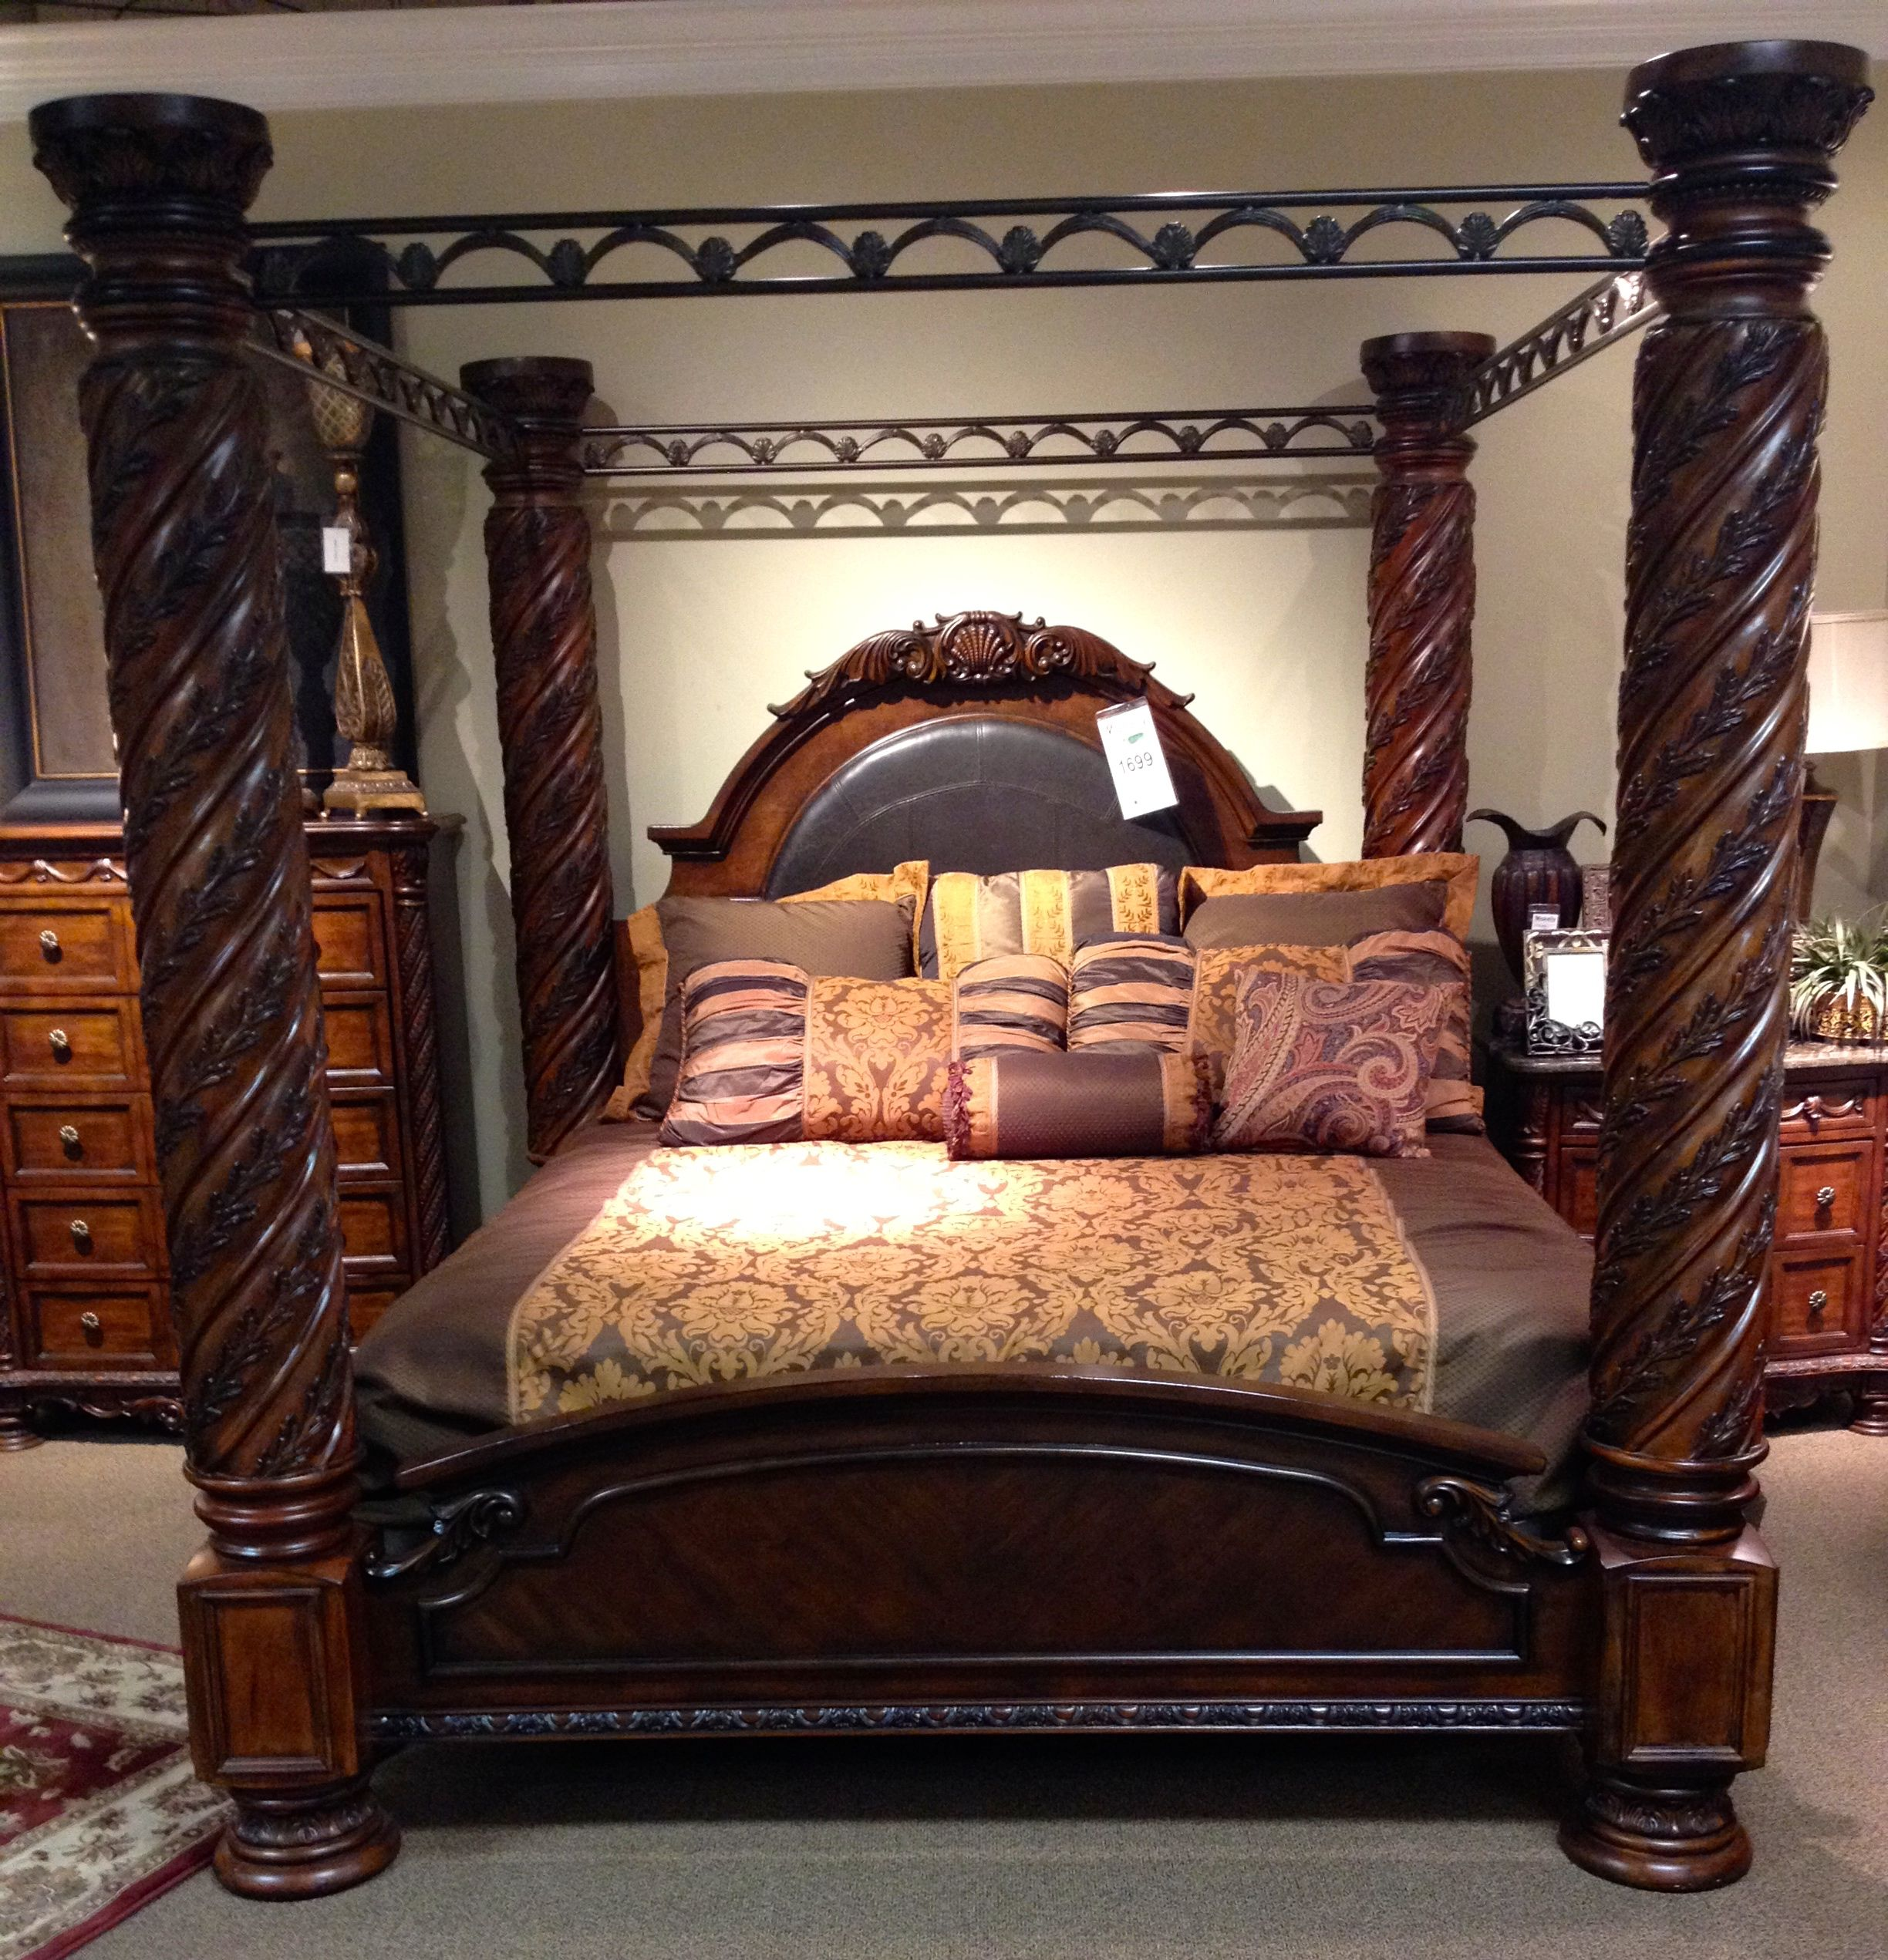 King canopy bed I have a friend